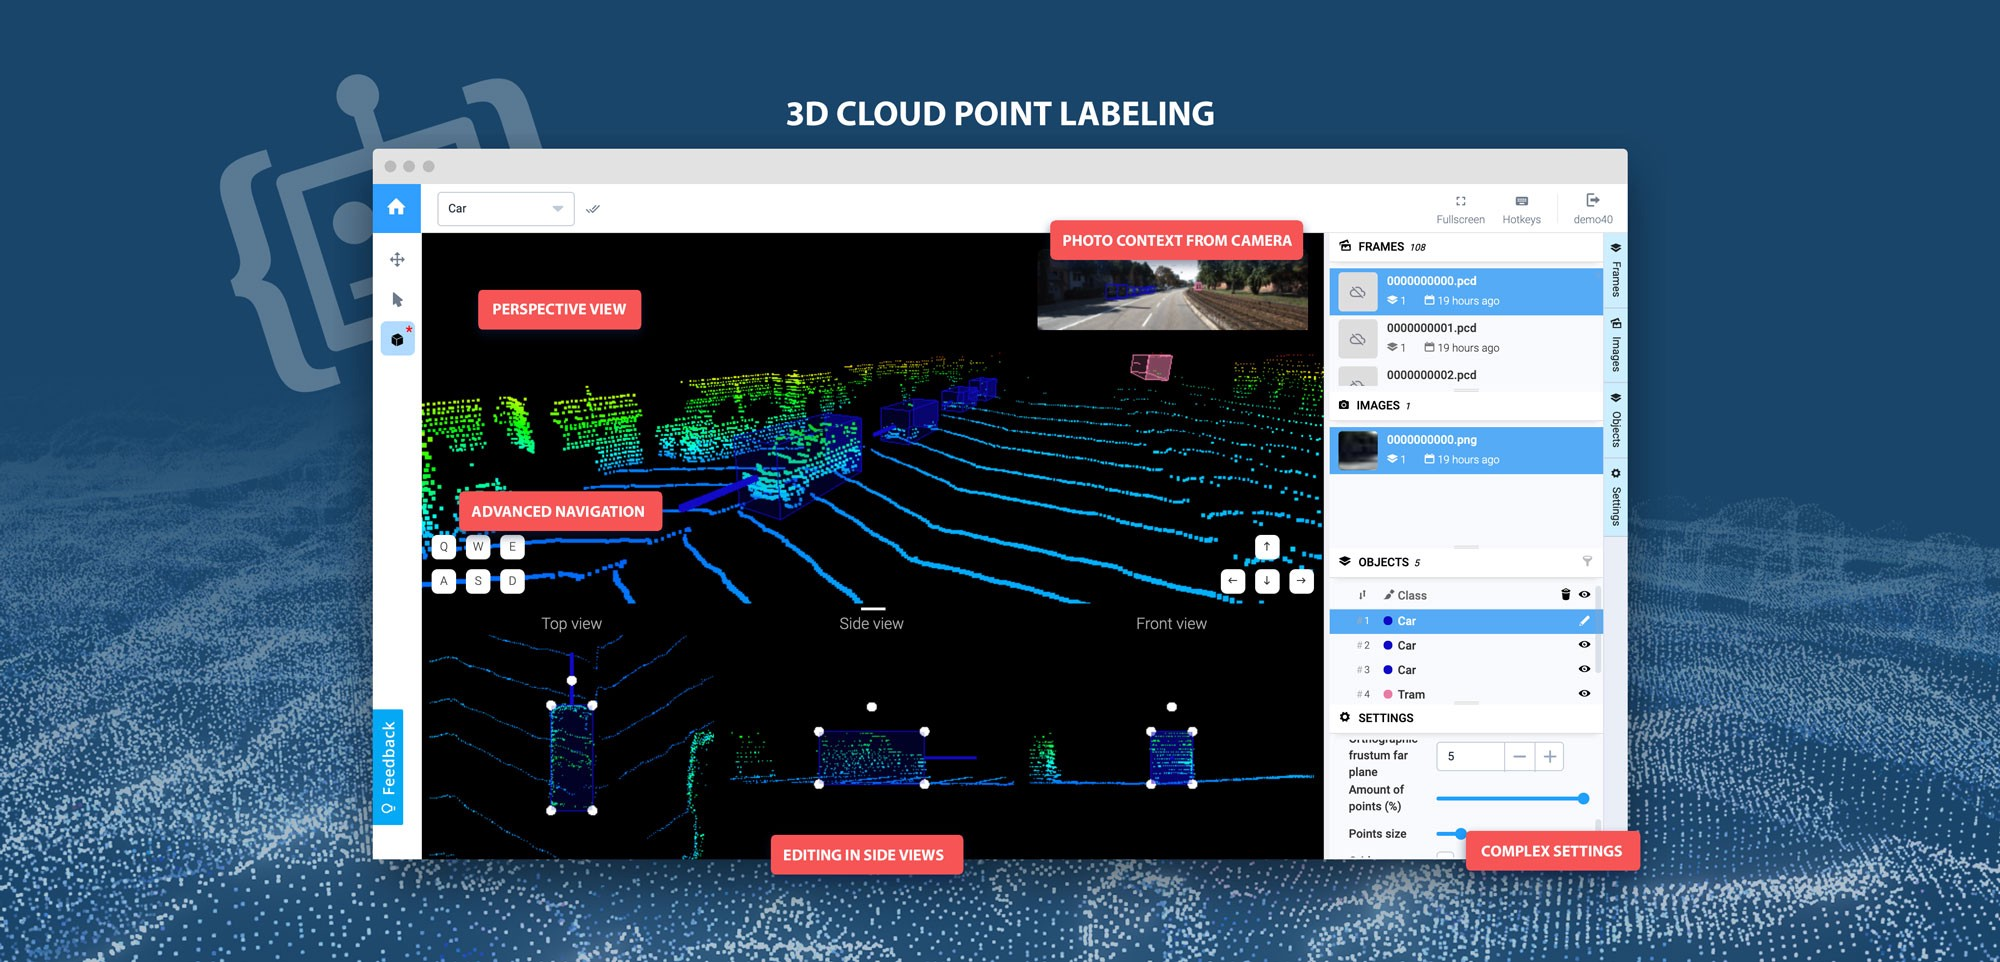 🎉 Releasing first online 3D Point Cloud labeling tool in